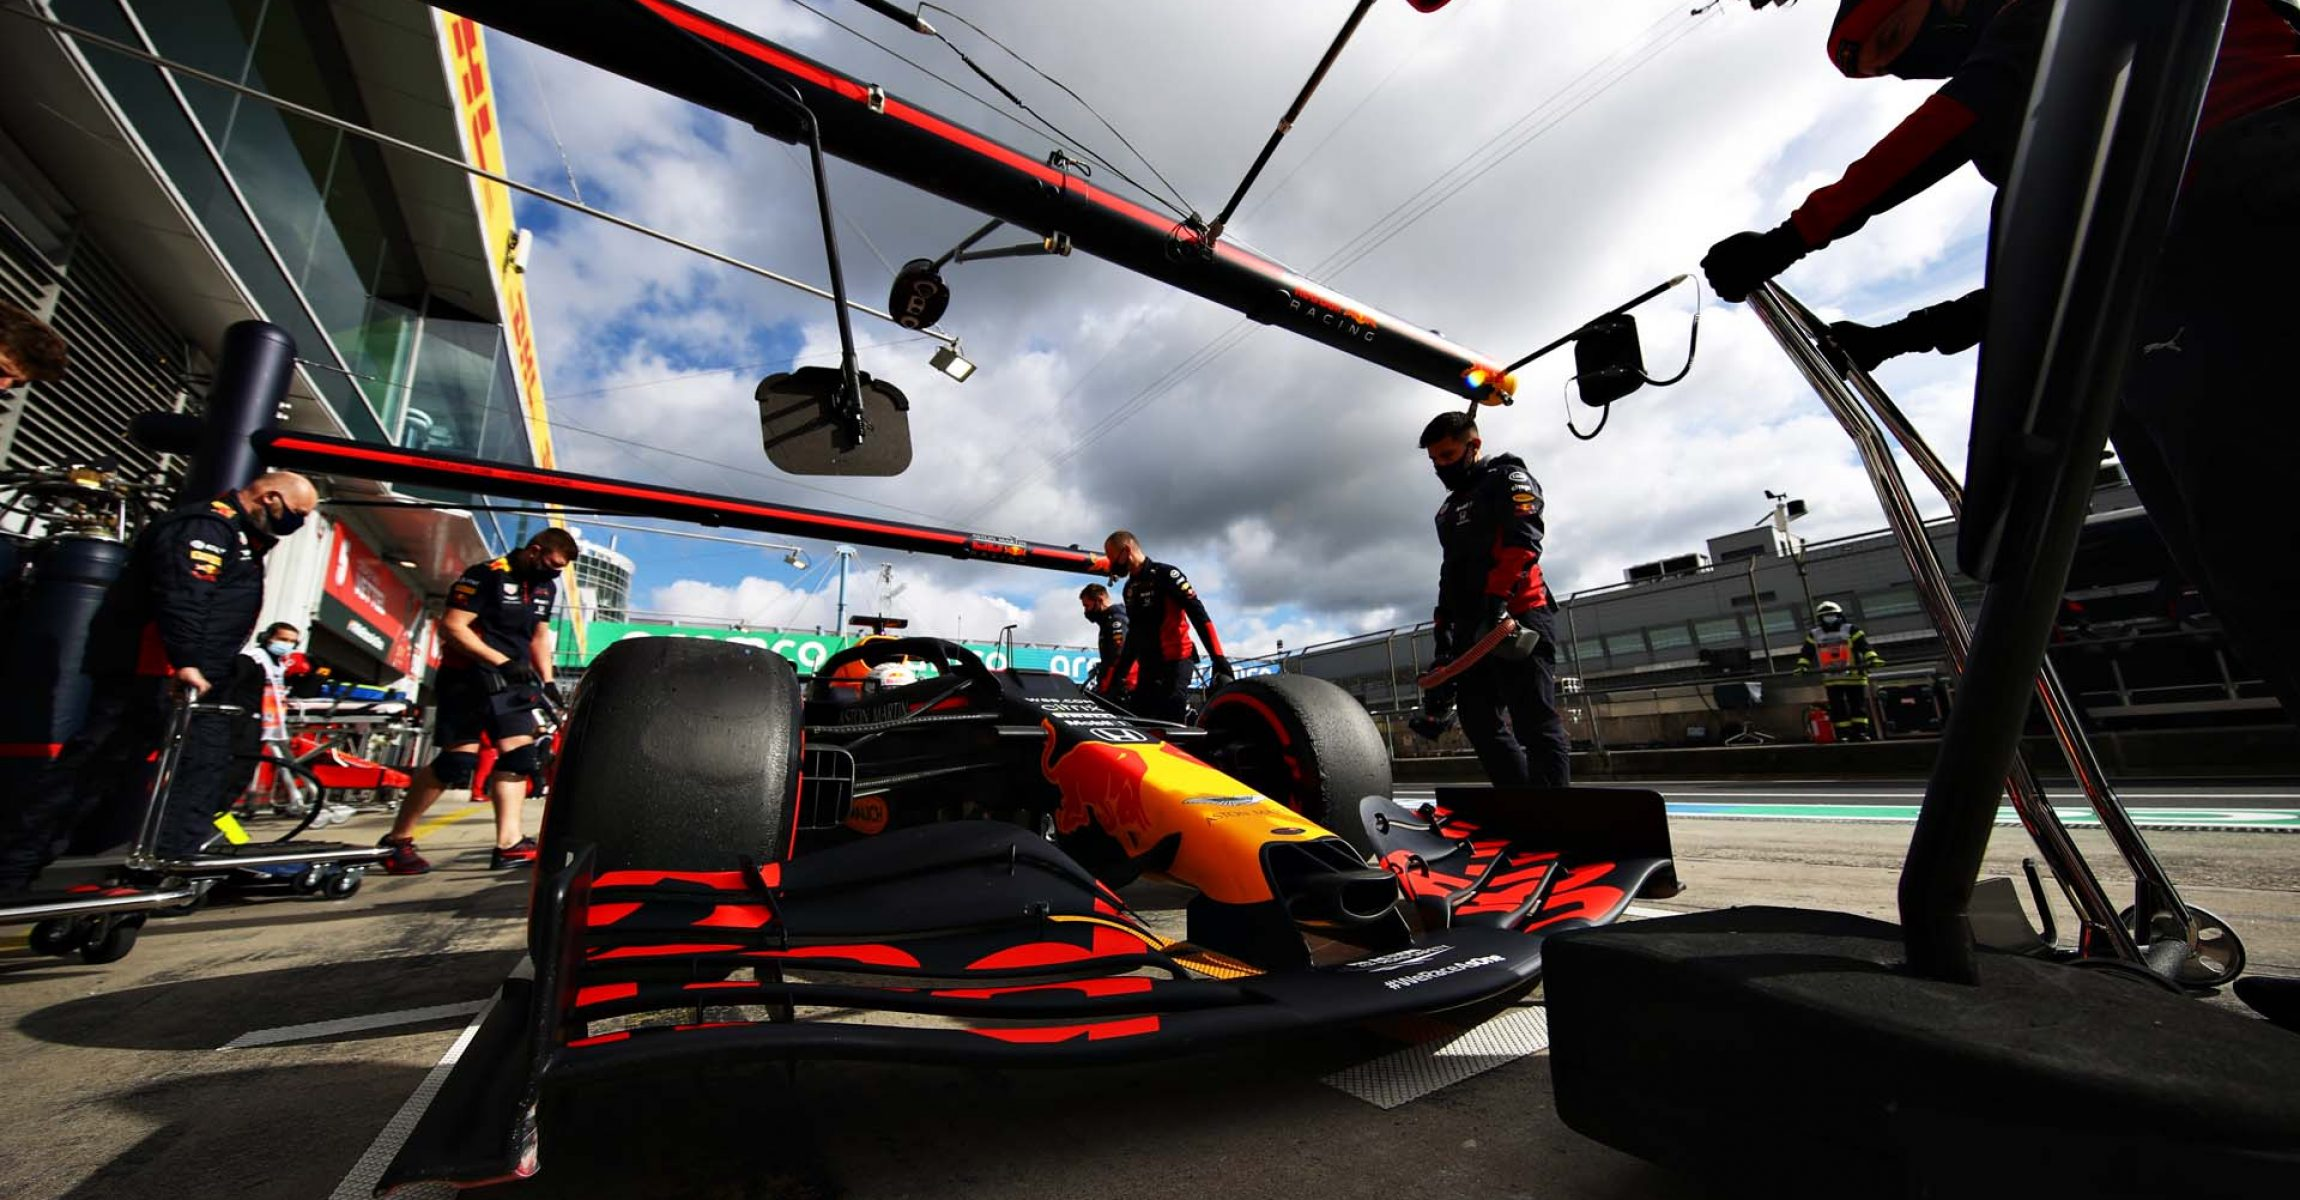 NUERBURG, GERMANY - OCTOBER 10: Max Verstappen of the Netherlands driving the (33) Aston Martin Red Bull Racing RB16 stops in the Pitlane during final practice ahead of the F1 Eifel Grand Prix at Nuerburgring on October 10, 2020 in Nuerburg, Germany. (Photo by Mark Thompson/Getty Images)